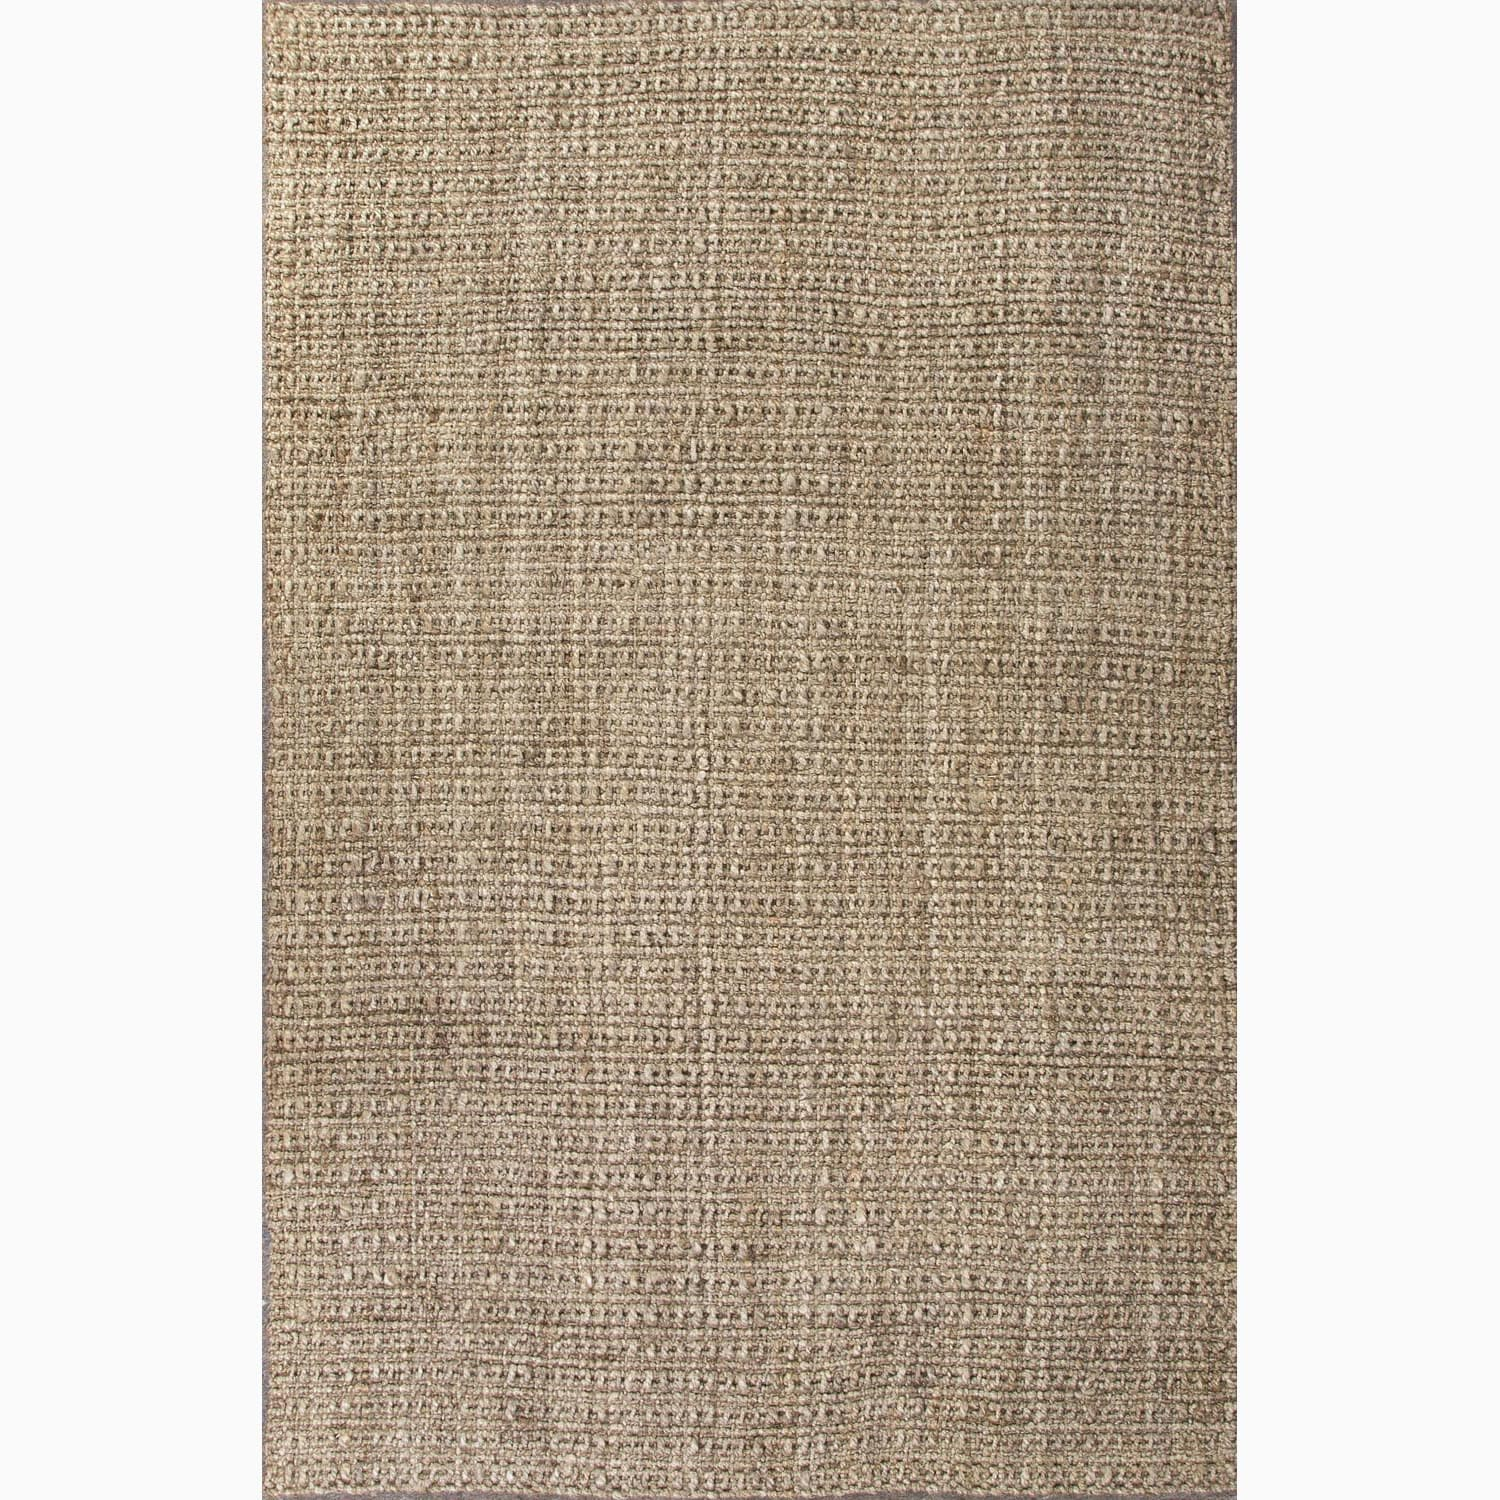 Handmade Plain Taupe/ Tan Jute Natural Rug (5 x 8)